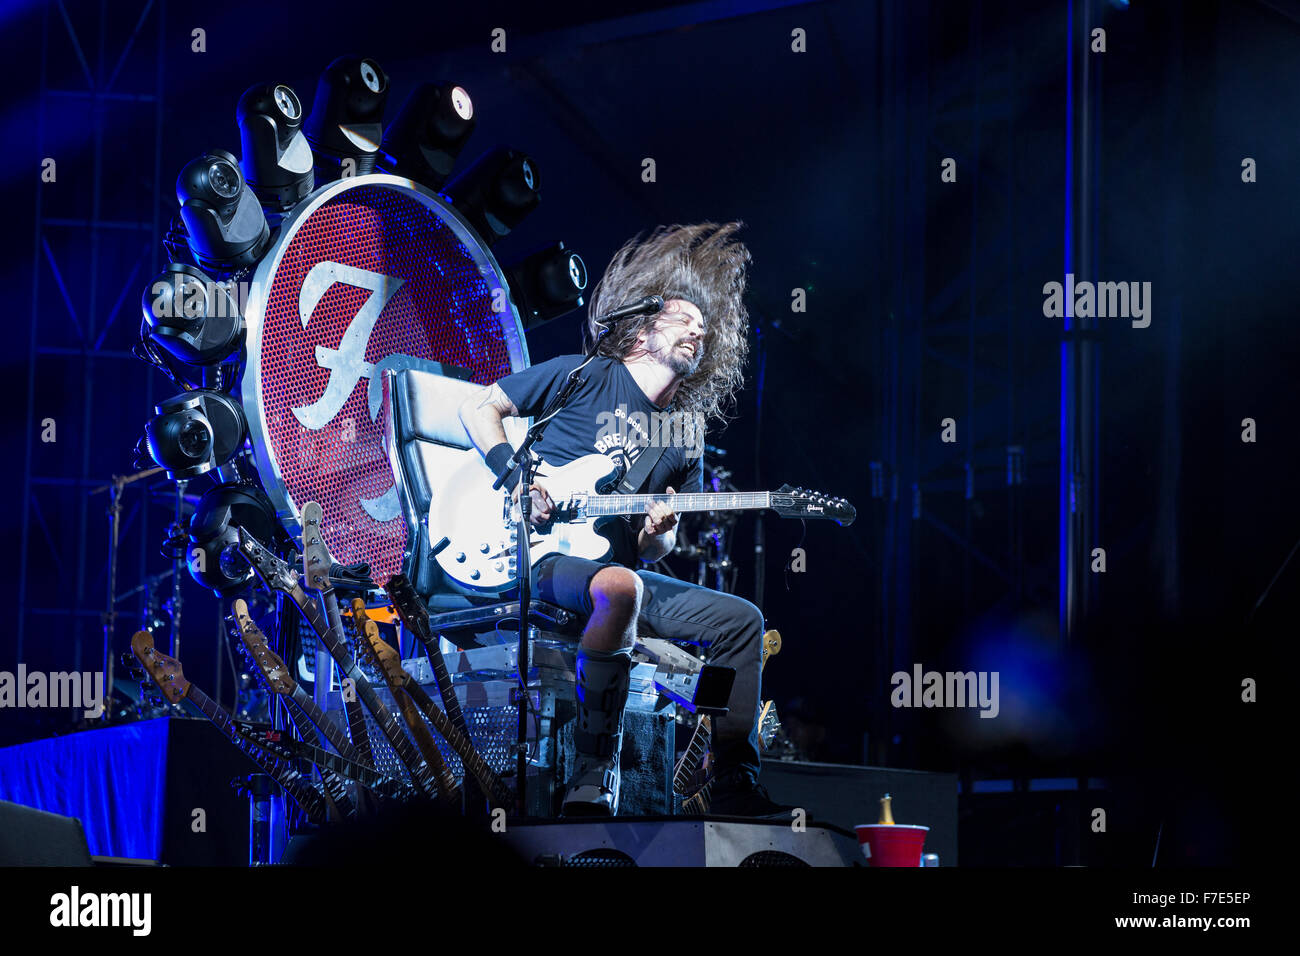 Dave Grohl of the Foo Fighters in concert - Stock Image